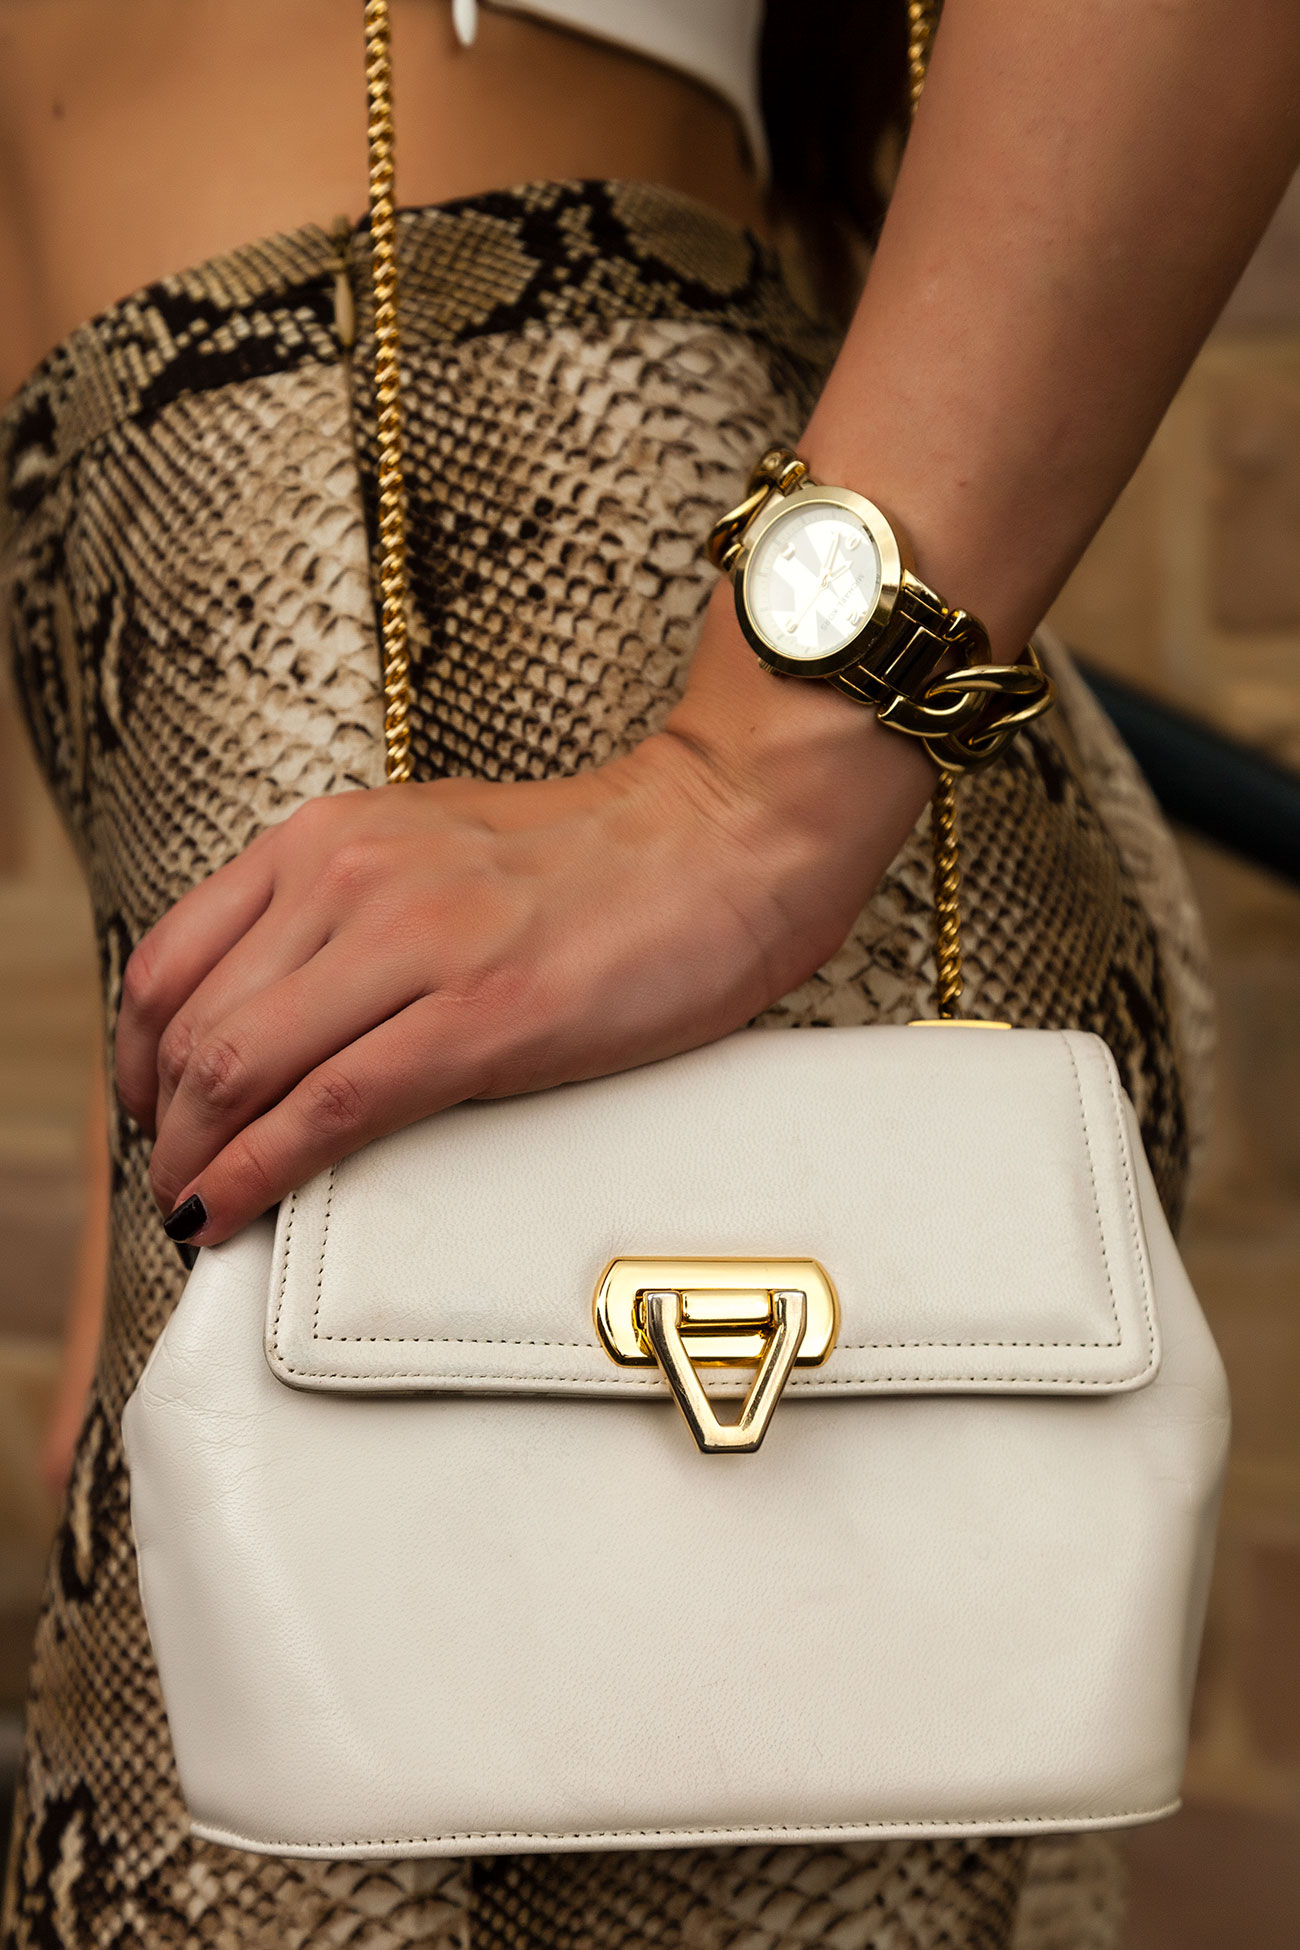 Small White Leather Bag